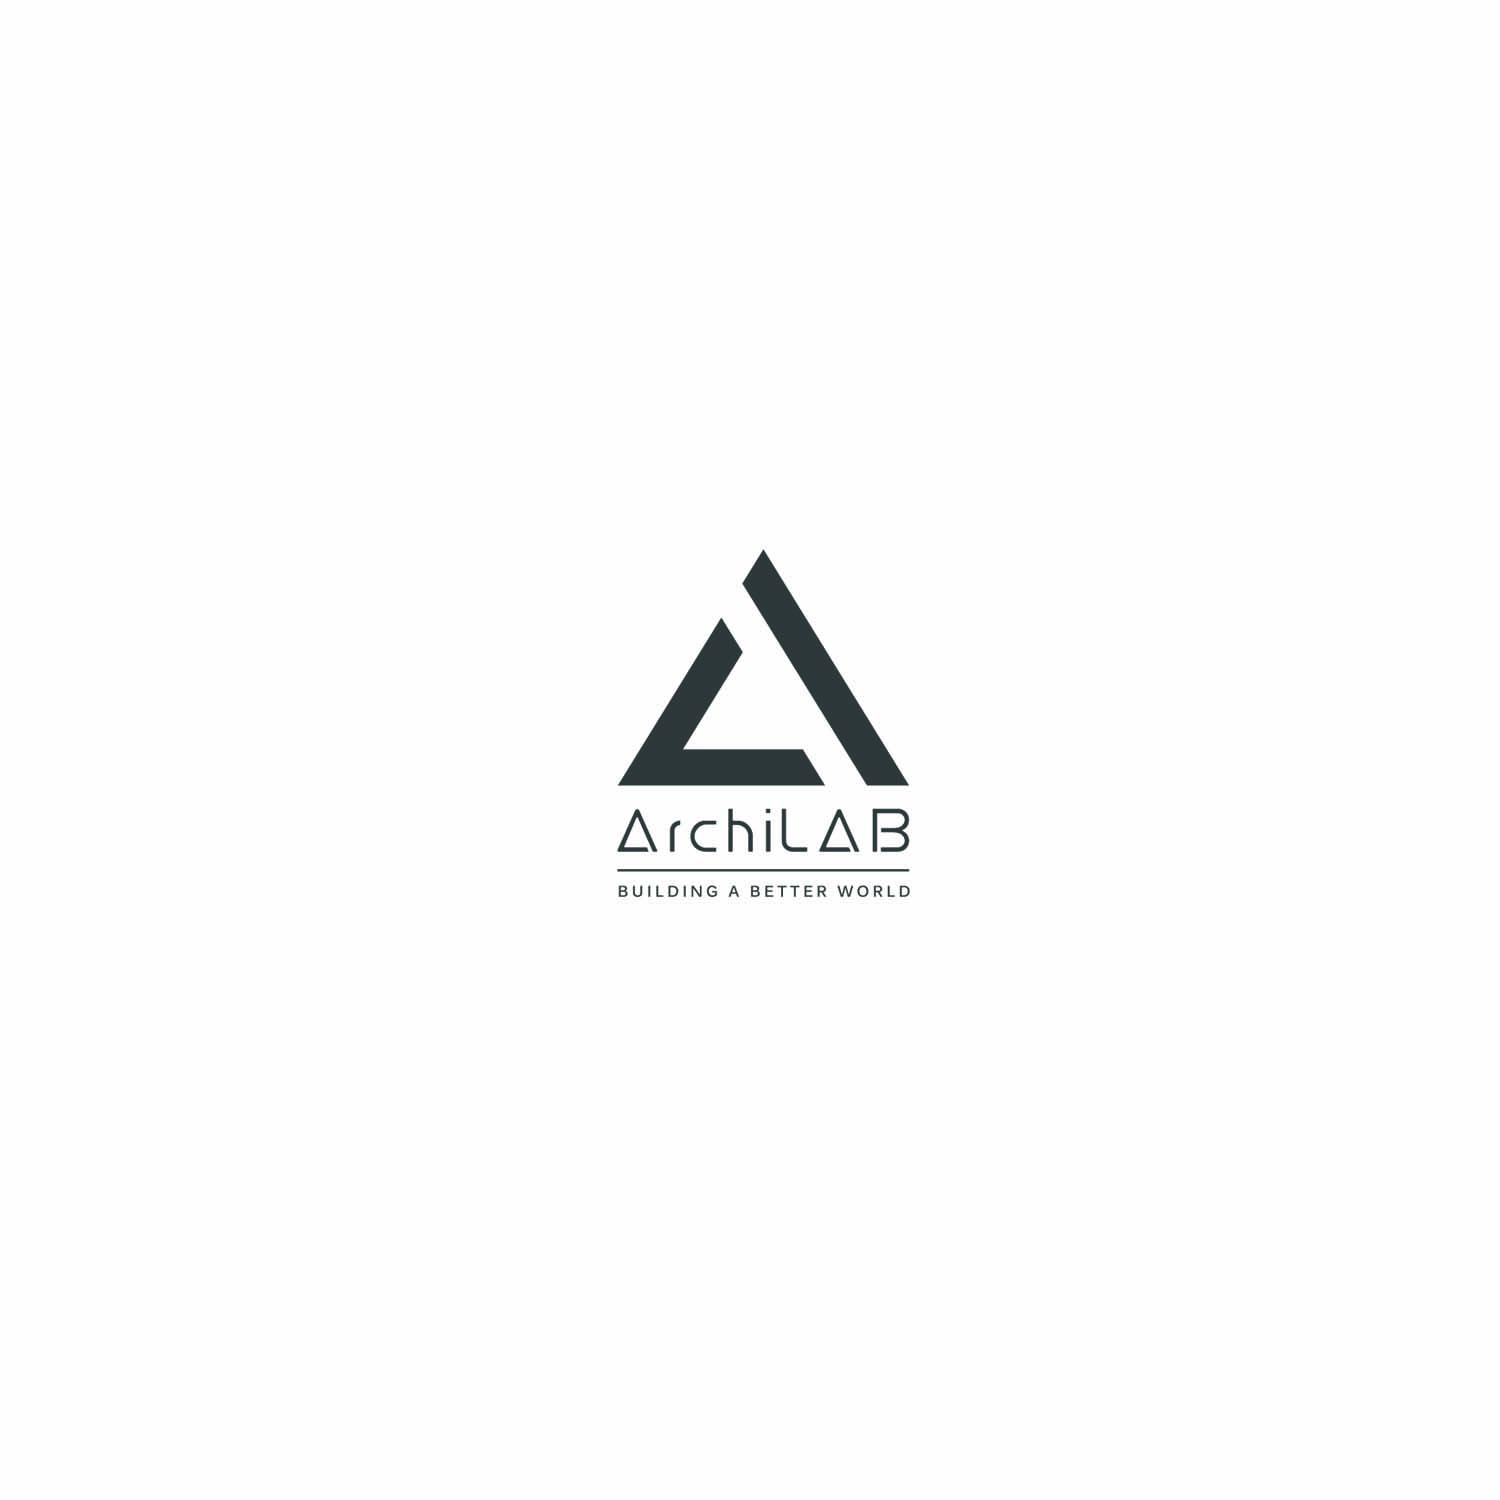 Modern Professional It Company Logo Design For Concept: Architecture Logos